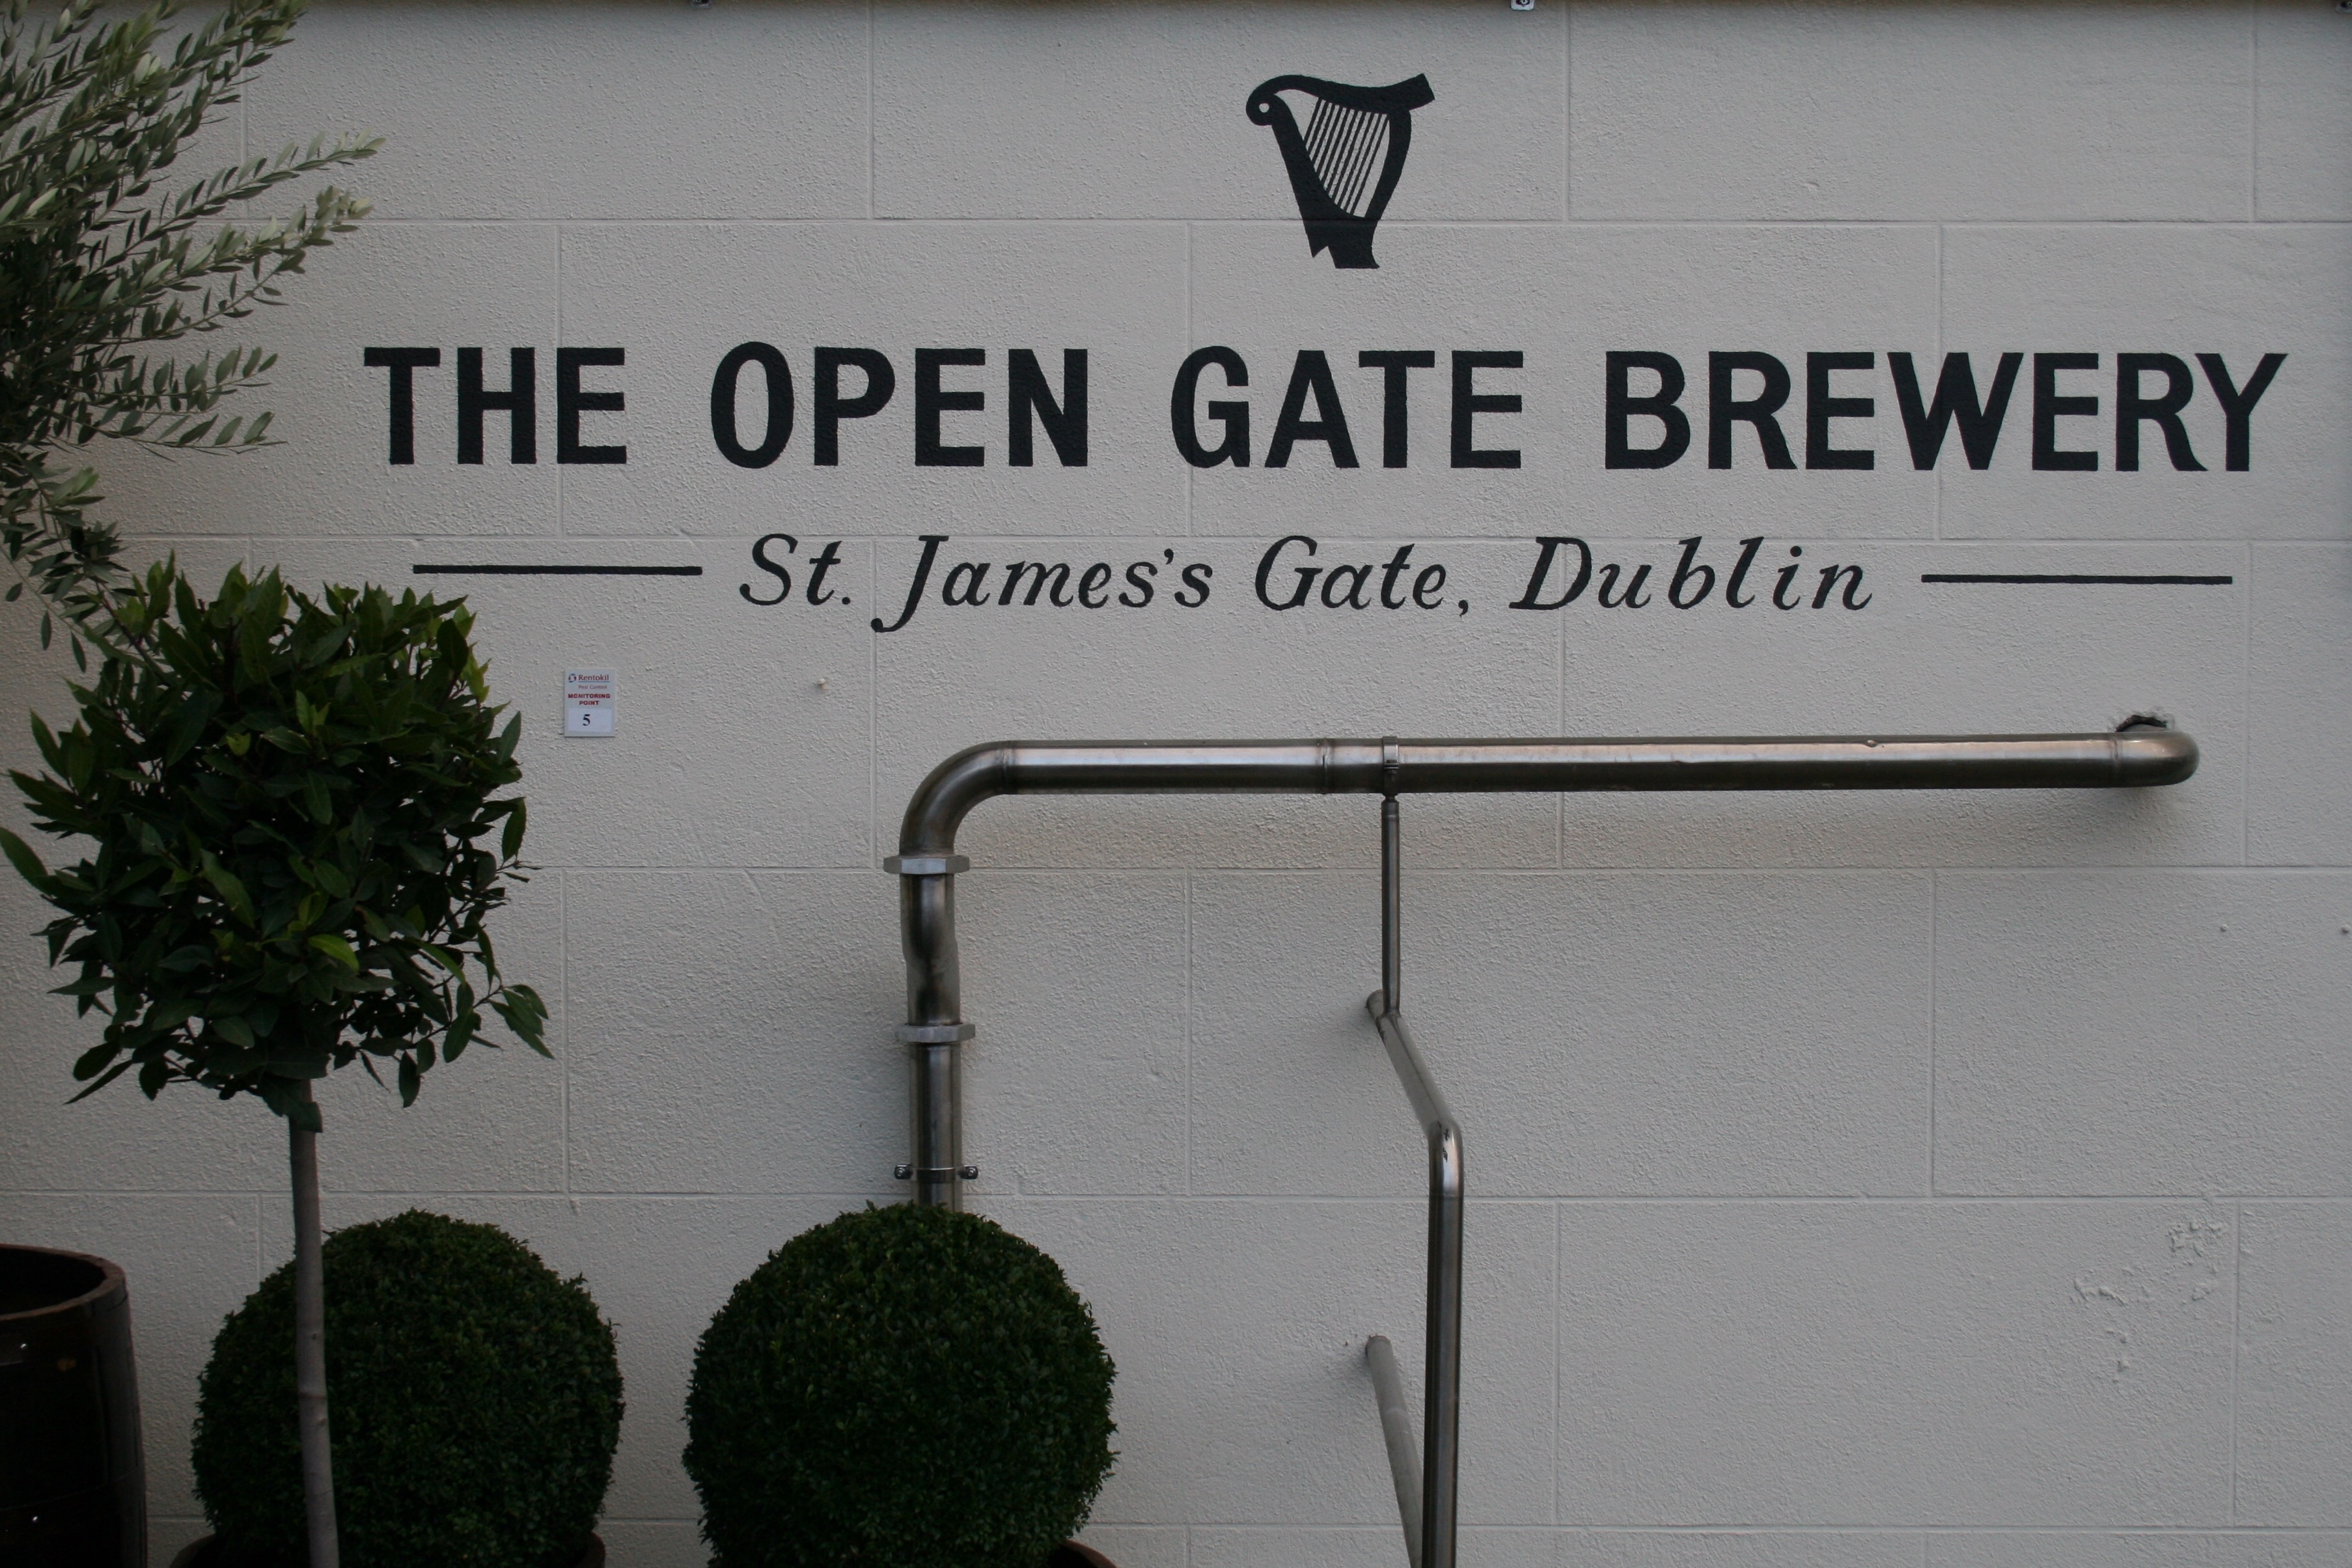 Welcome to The Open Gate Brewery - St. James's Gate at Guinness.